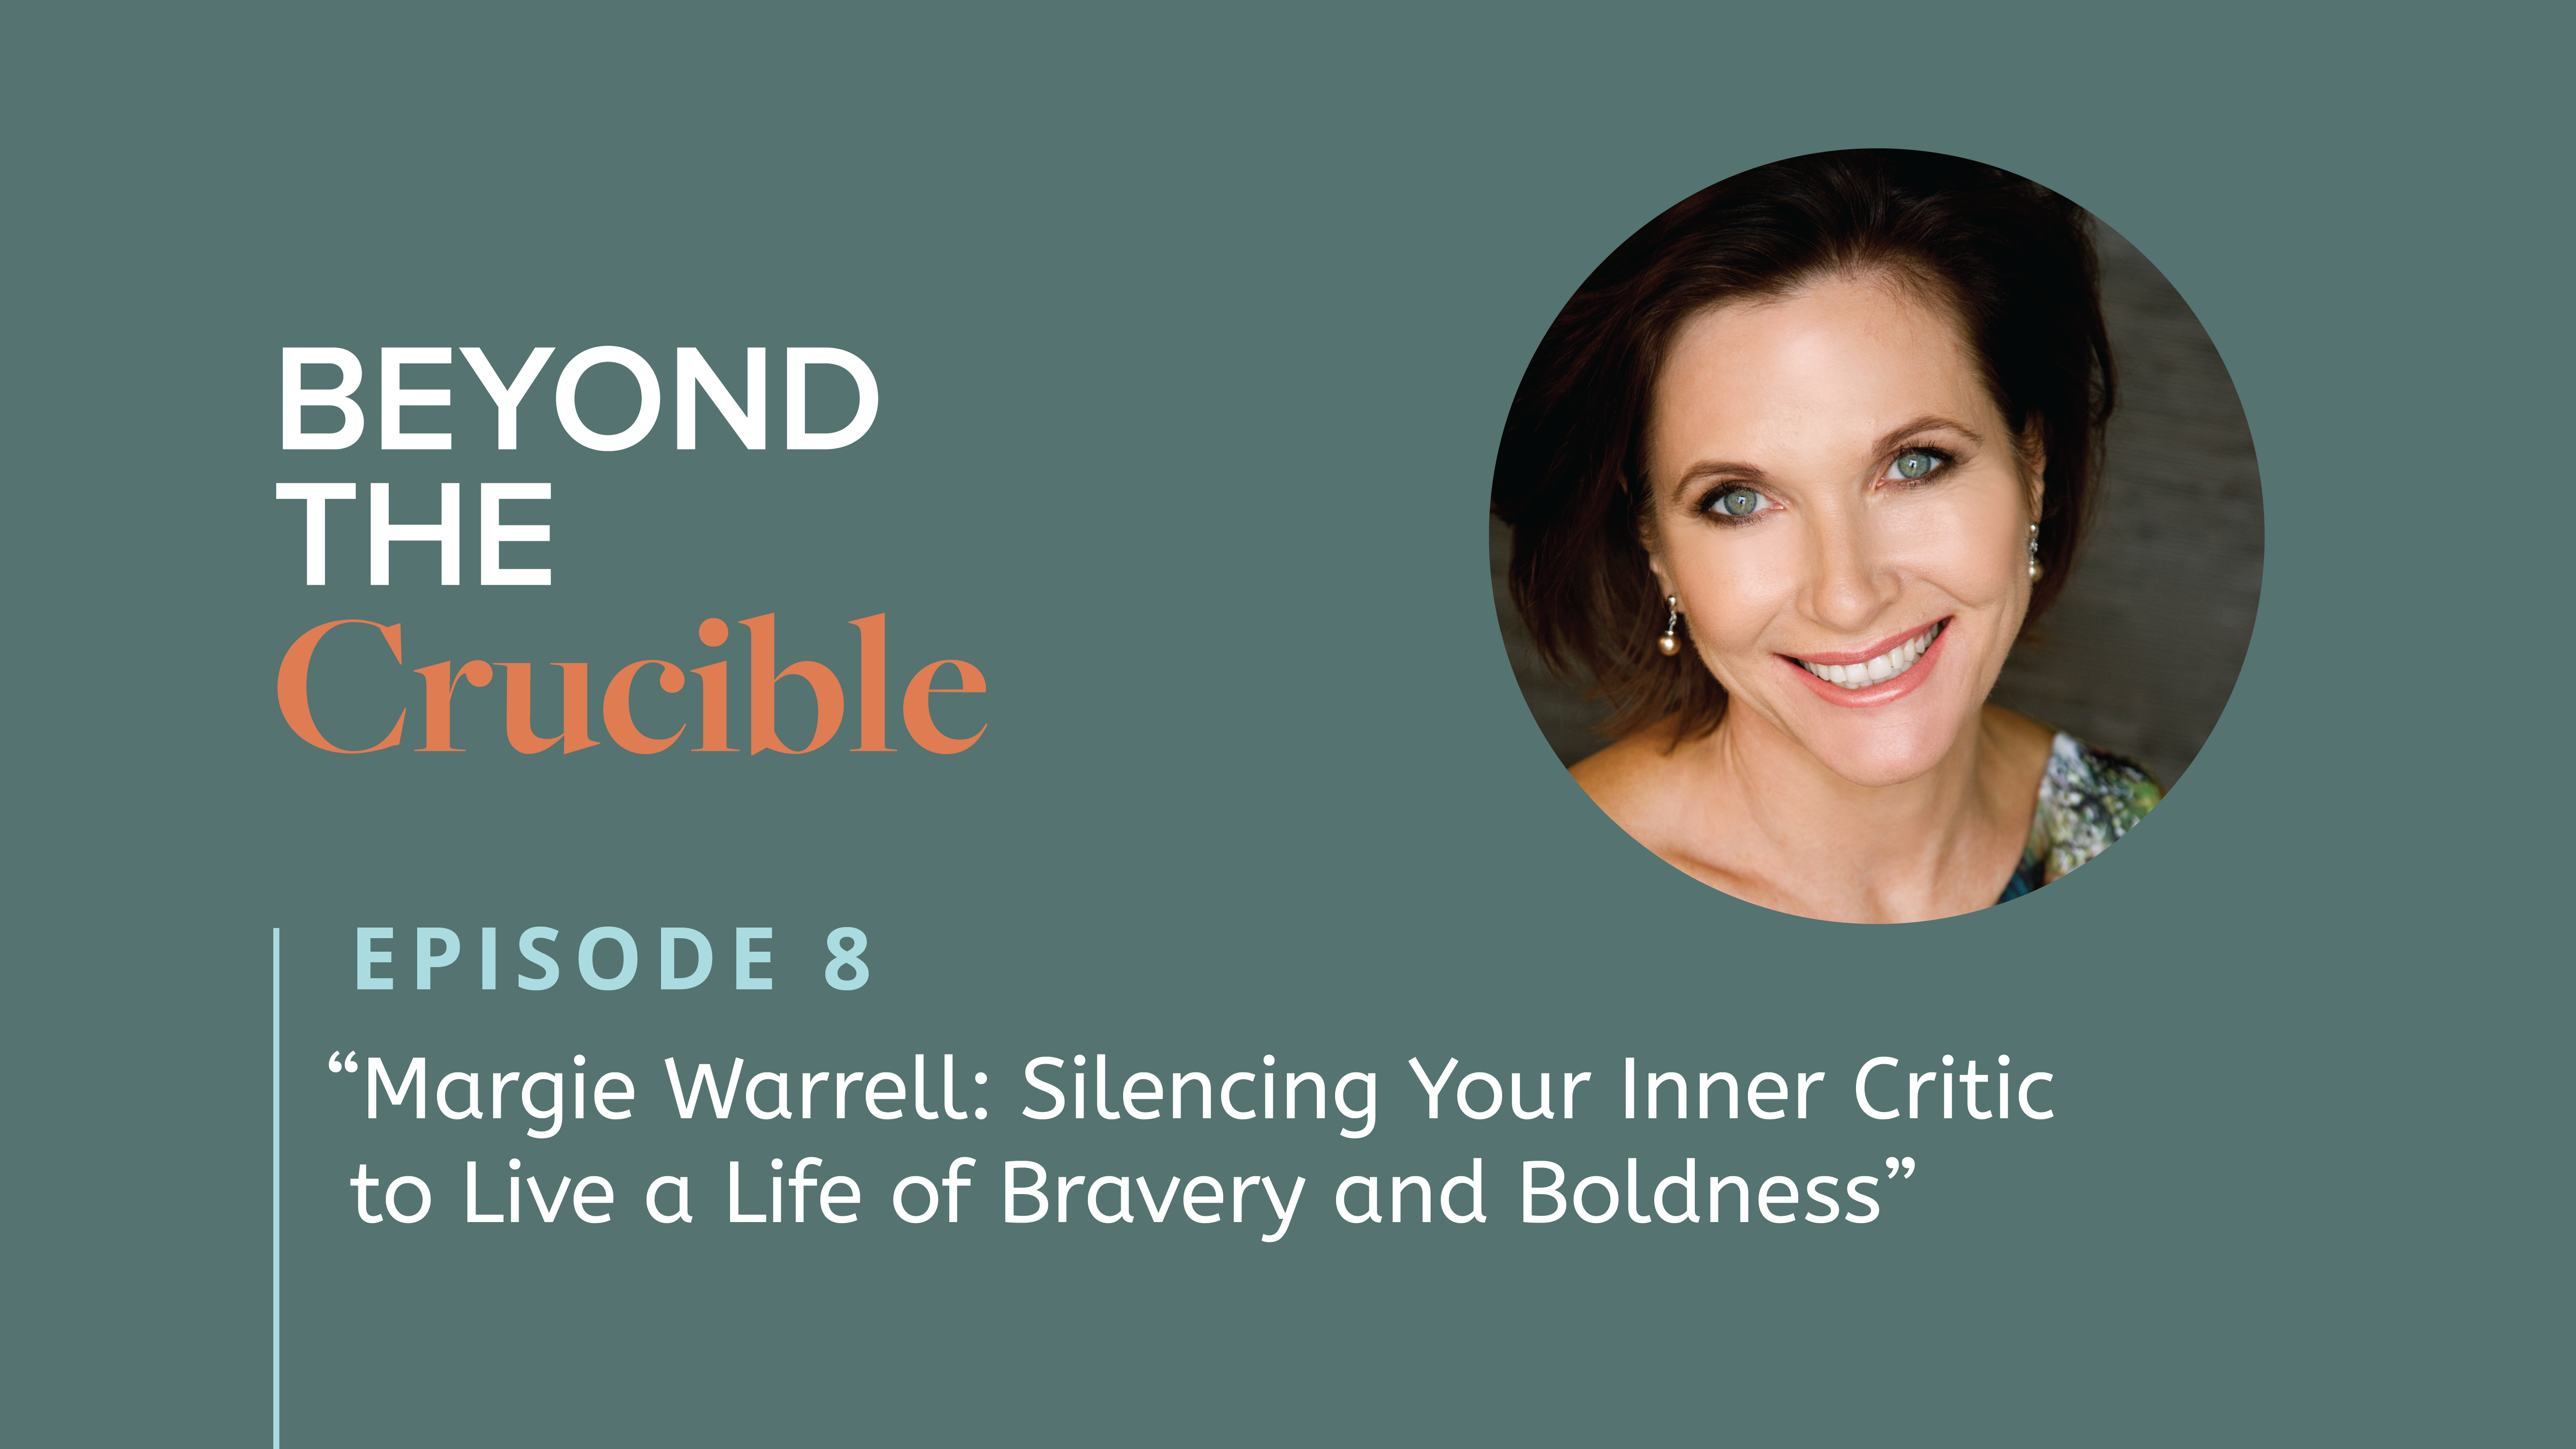 Margie Warrell: Silencing your inner critic to live a life of bravery and boldness